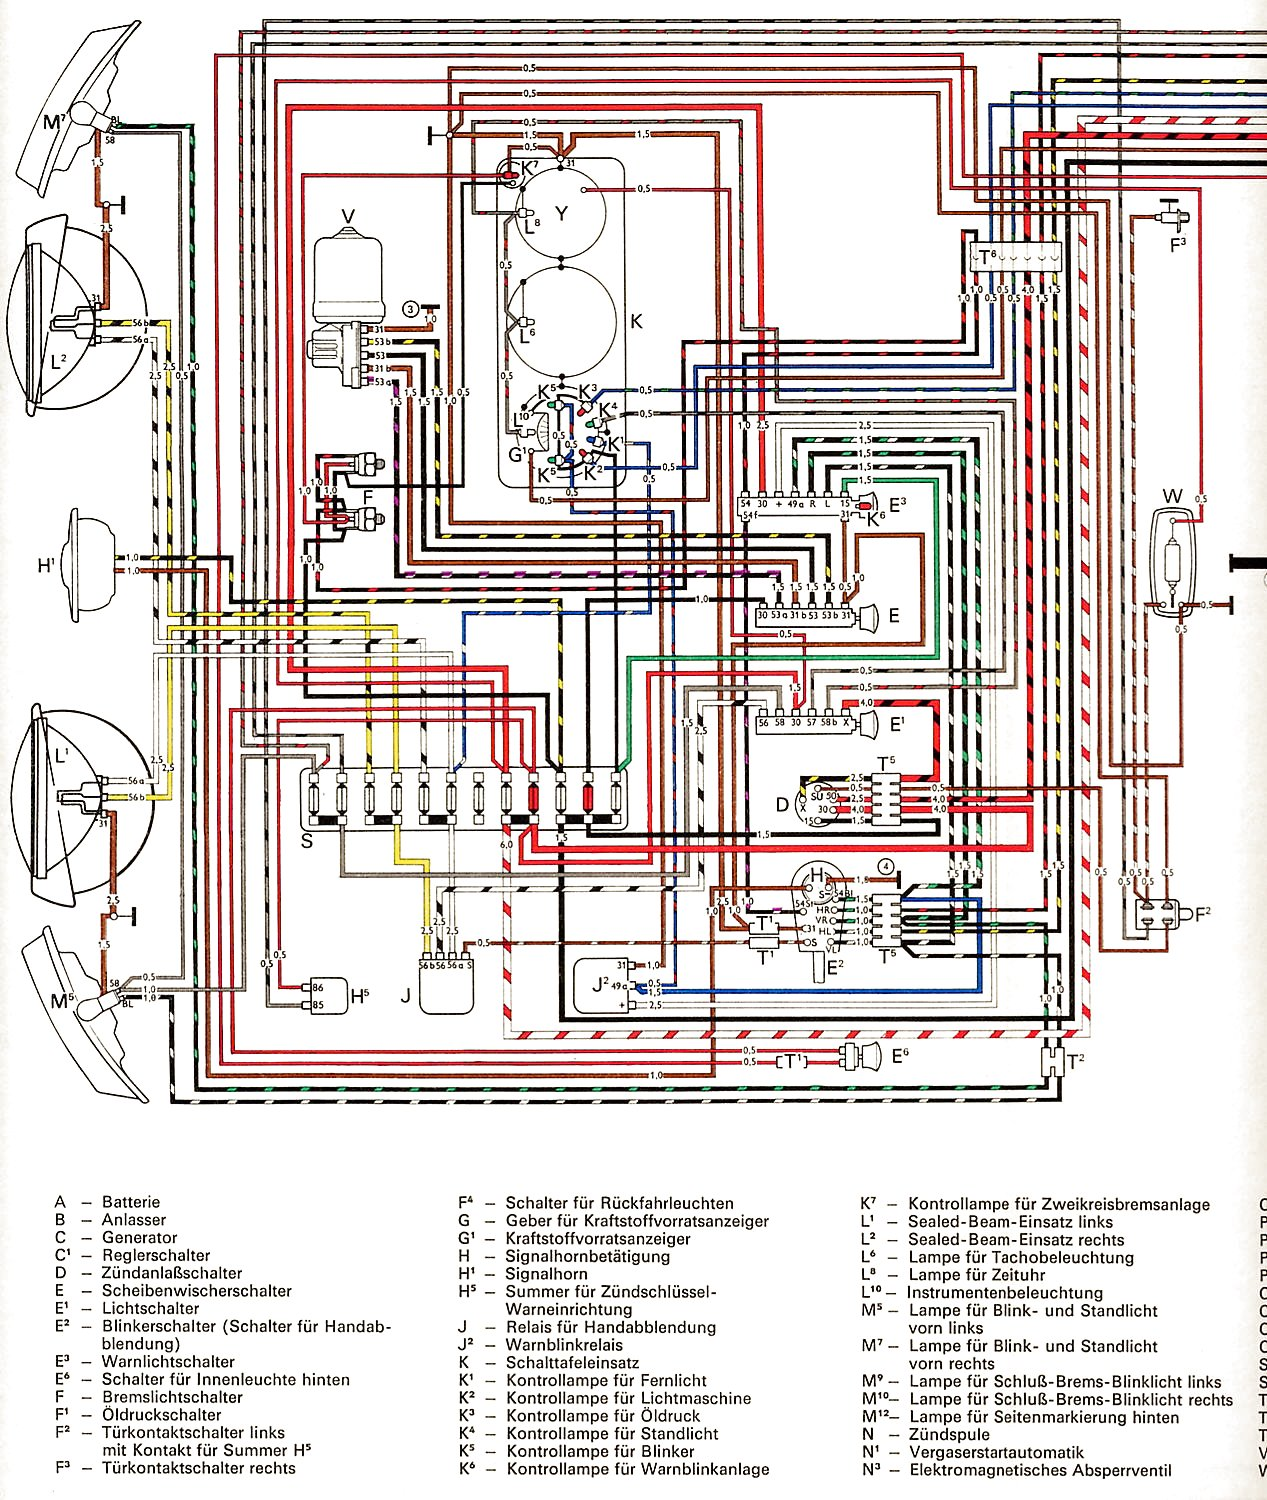 wiring diagram for 1979 vw super beetle wiring diagram database 71 super beetle wiring diagram vintagebus com vw bus (and other) wiring diagrams 74 super beetle and beetle wiring diagram wiring diagram for 1979 vw super beetle